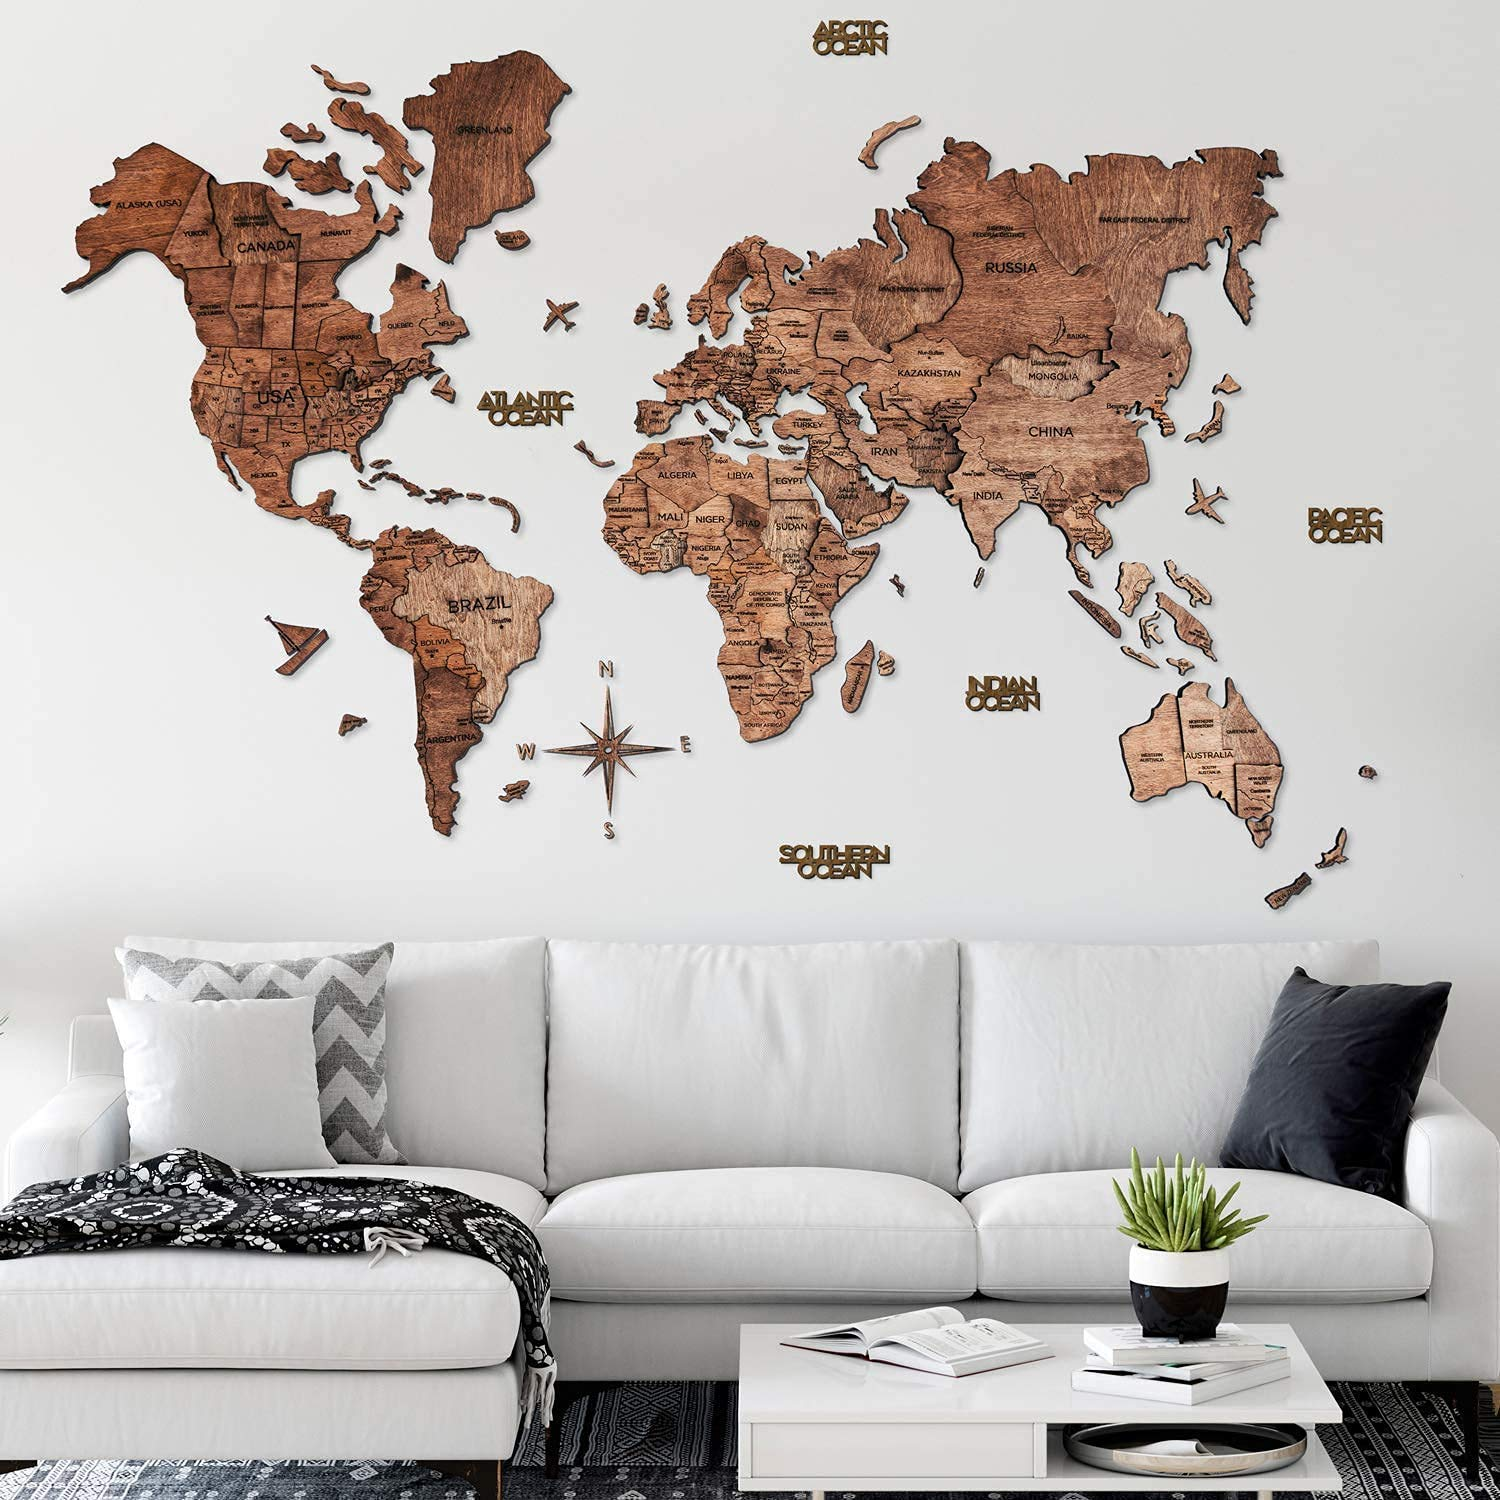 Home Decor 3D Wood World Map Wall Art Large Wall Decor - World Travel Map All Sizes (M L XL XXL) Any Occasion Gift Idea - Wall Art For Home & Kitchen or Office